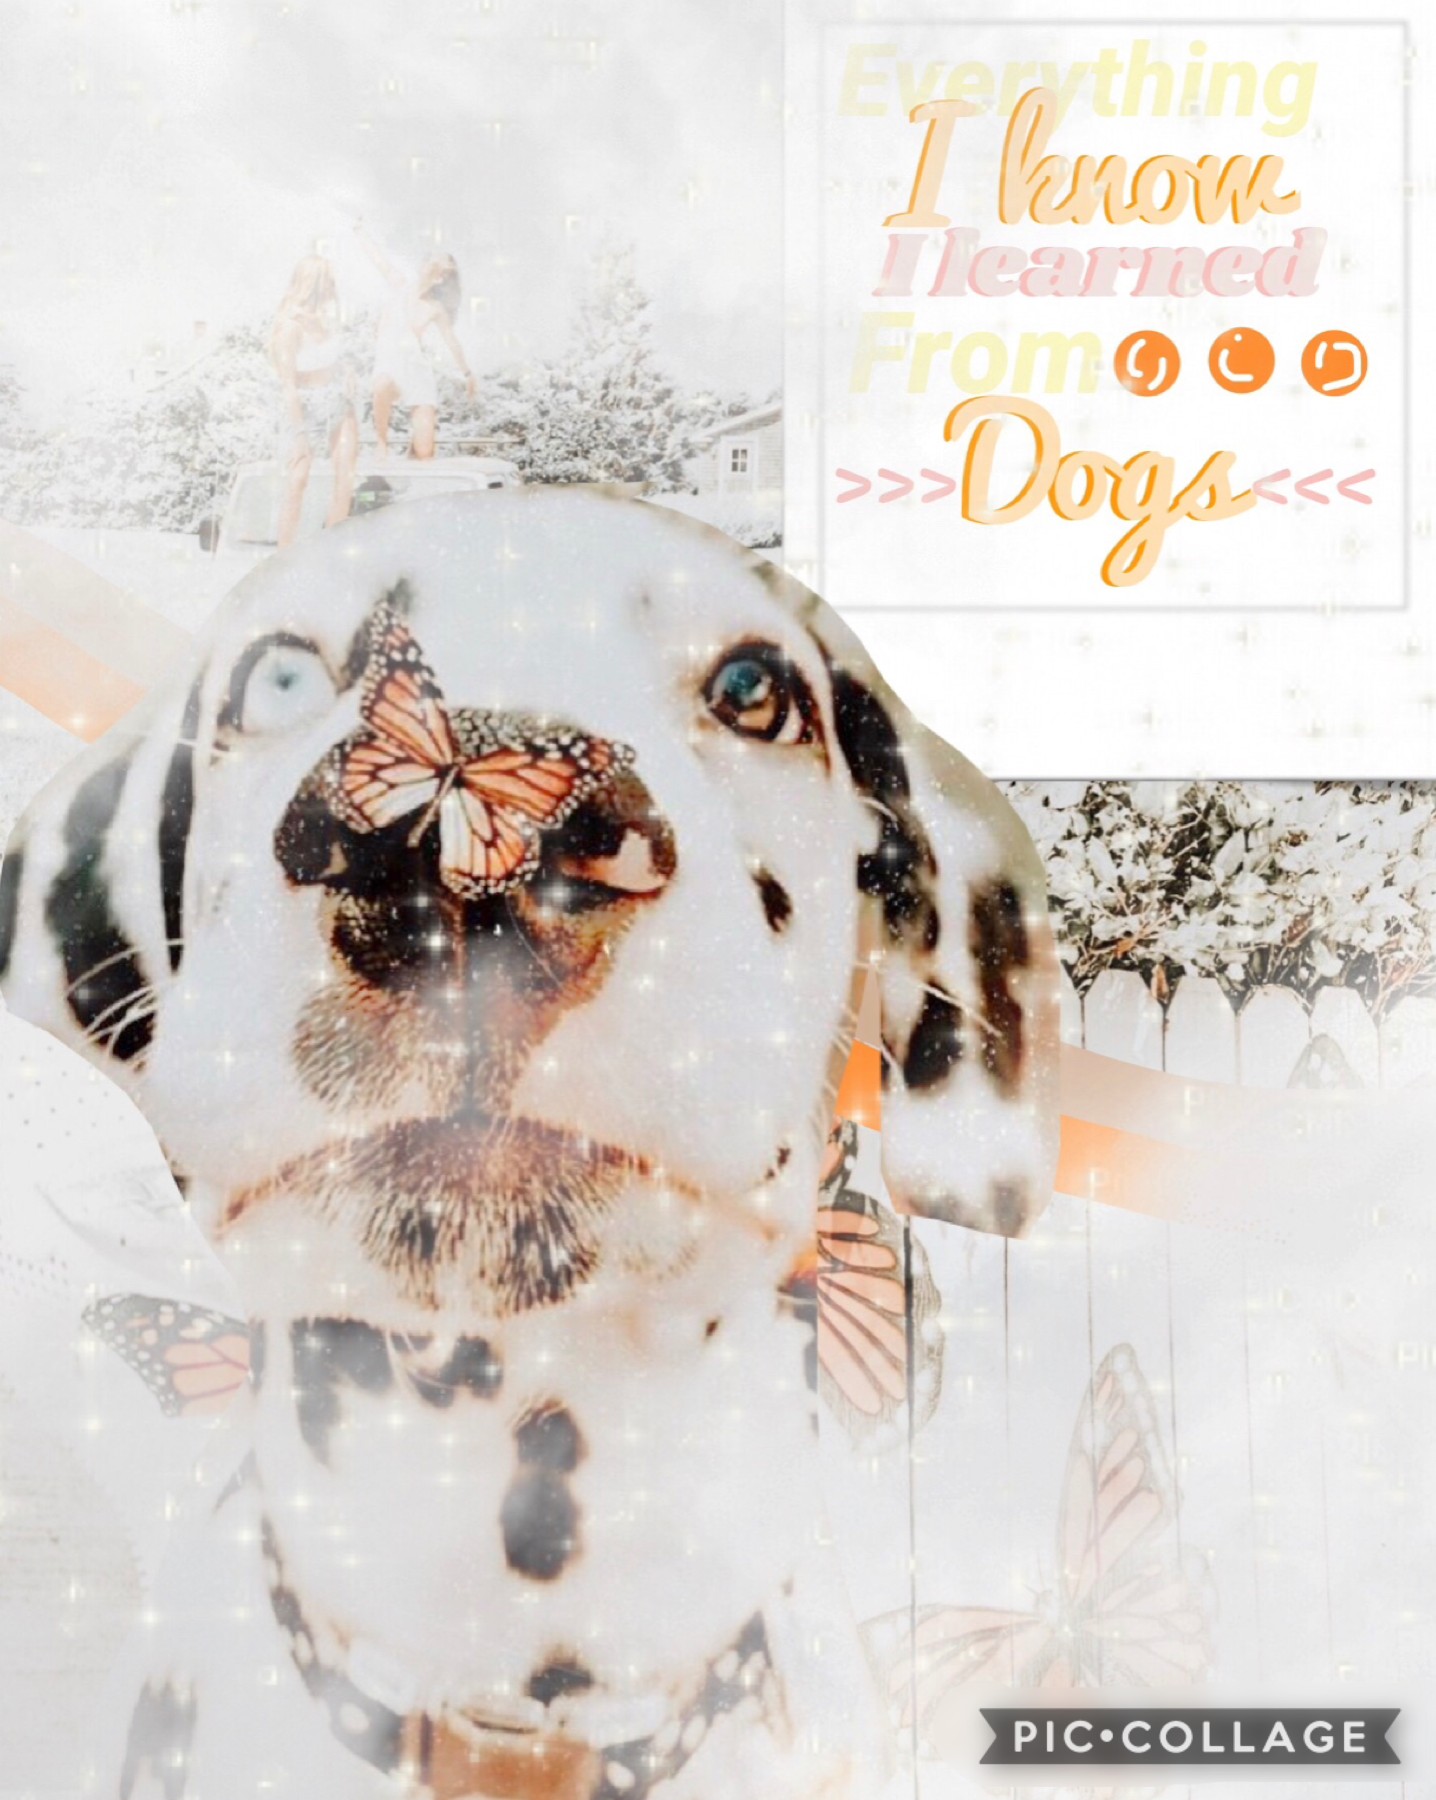 4/28/20 I always do people😆 so here's a dog themed collage!!:)